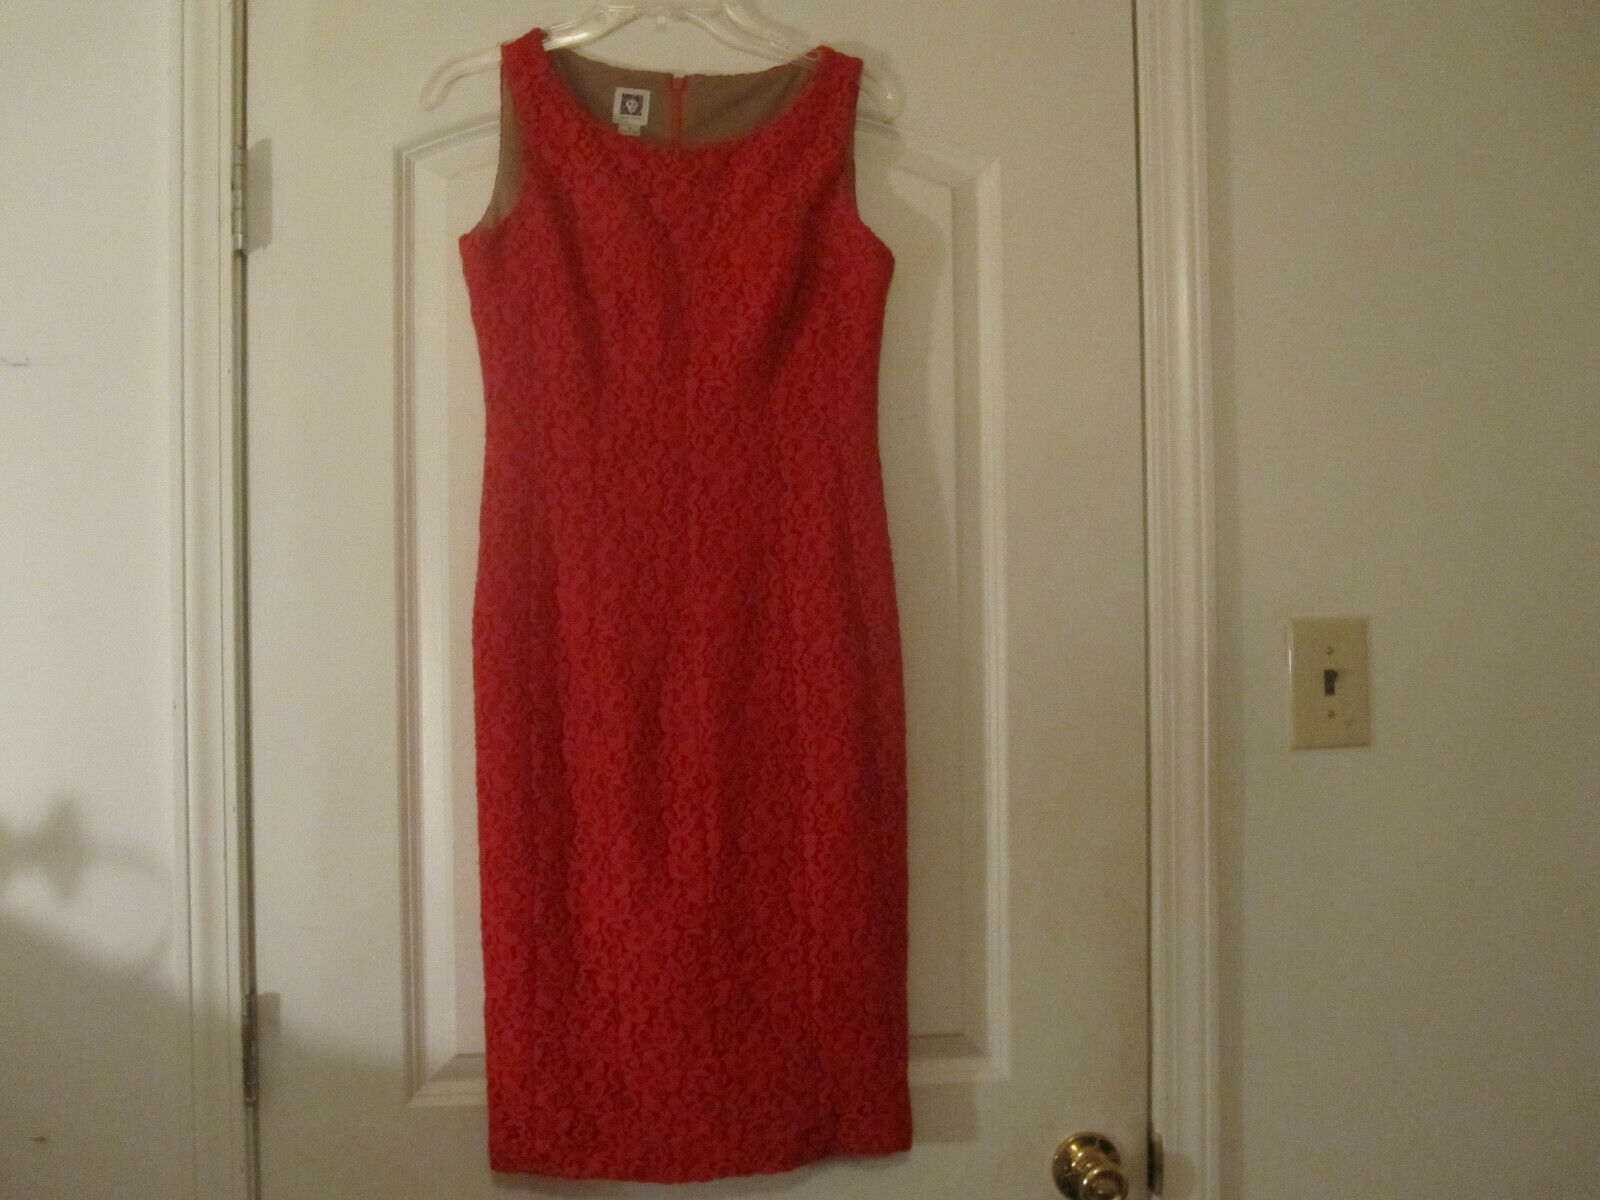 Anne Klein Womens Red Crochet Dress Lined Sleeveless Size 2 image 8